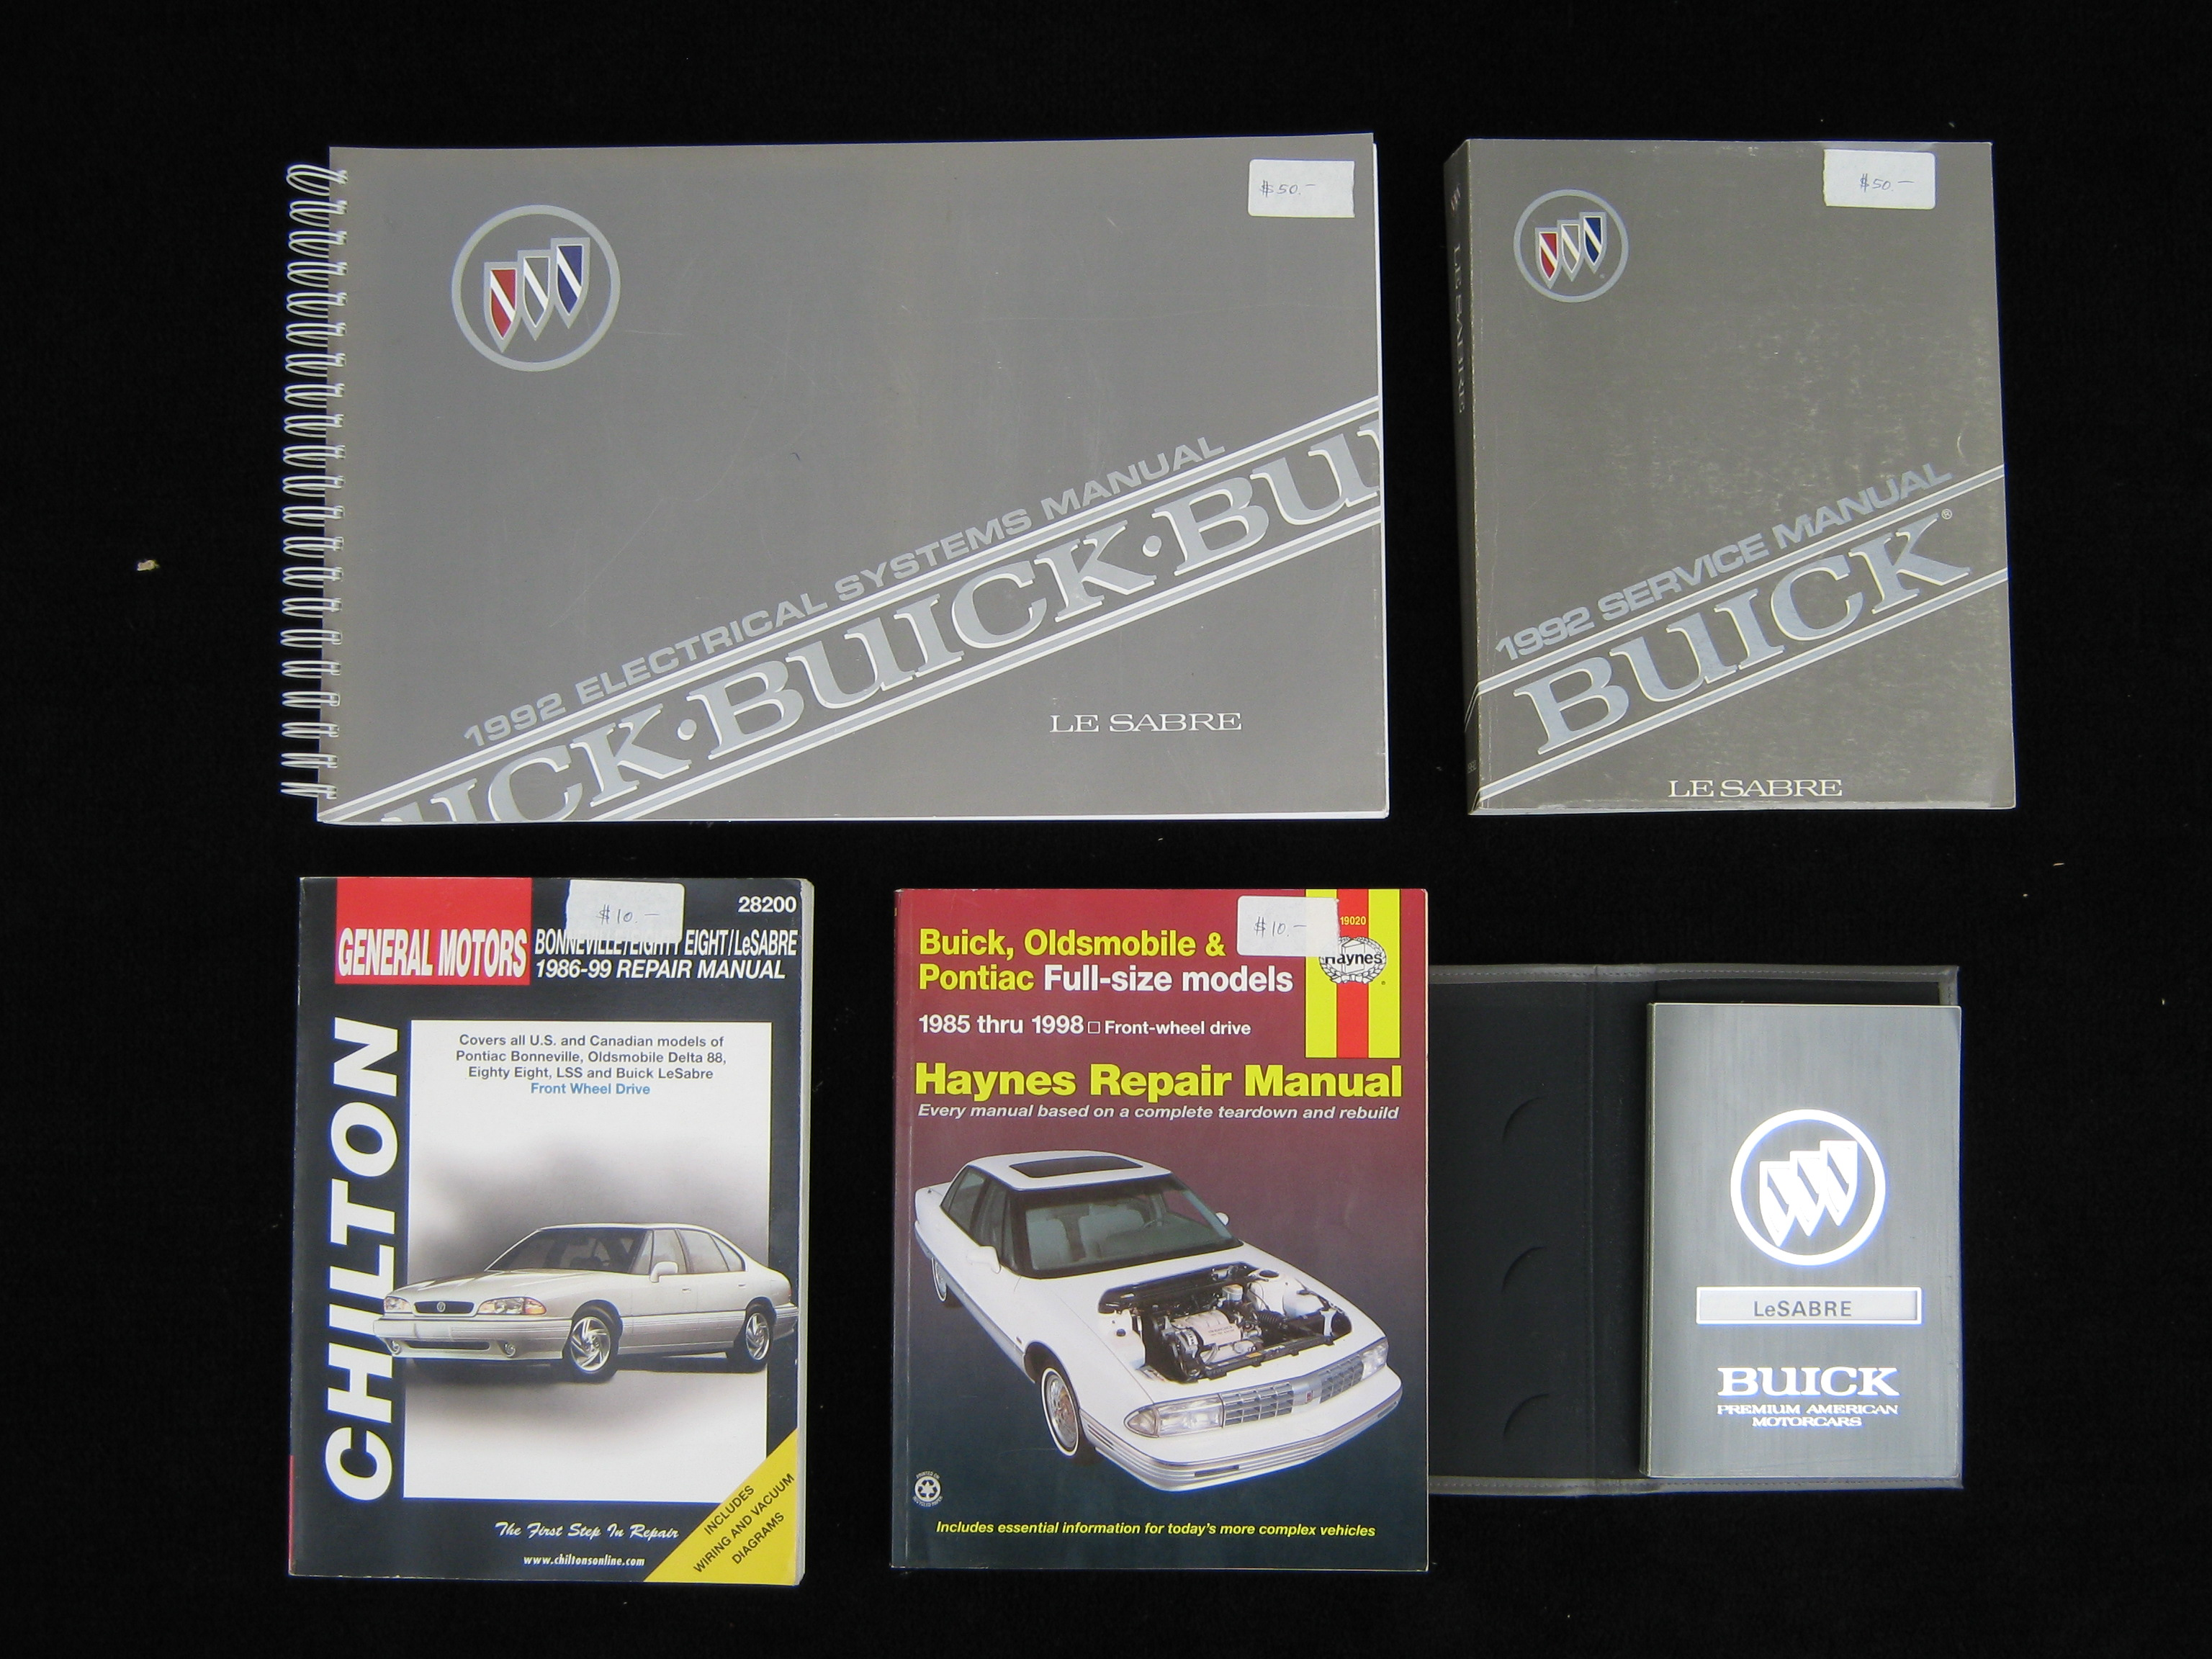 1992 Buick Le Sabre Manuals